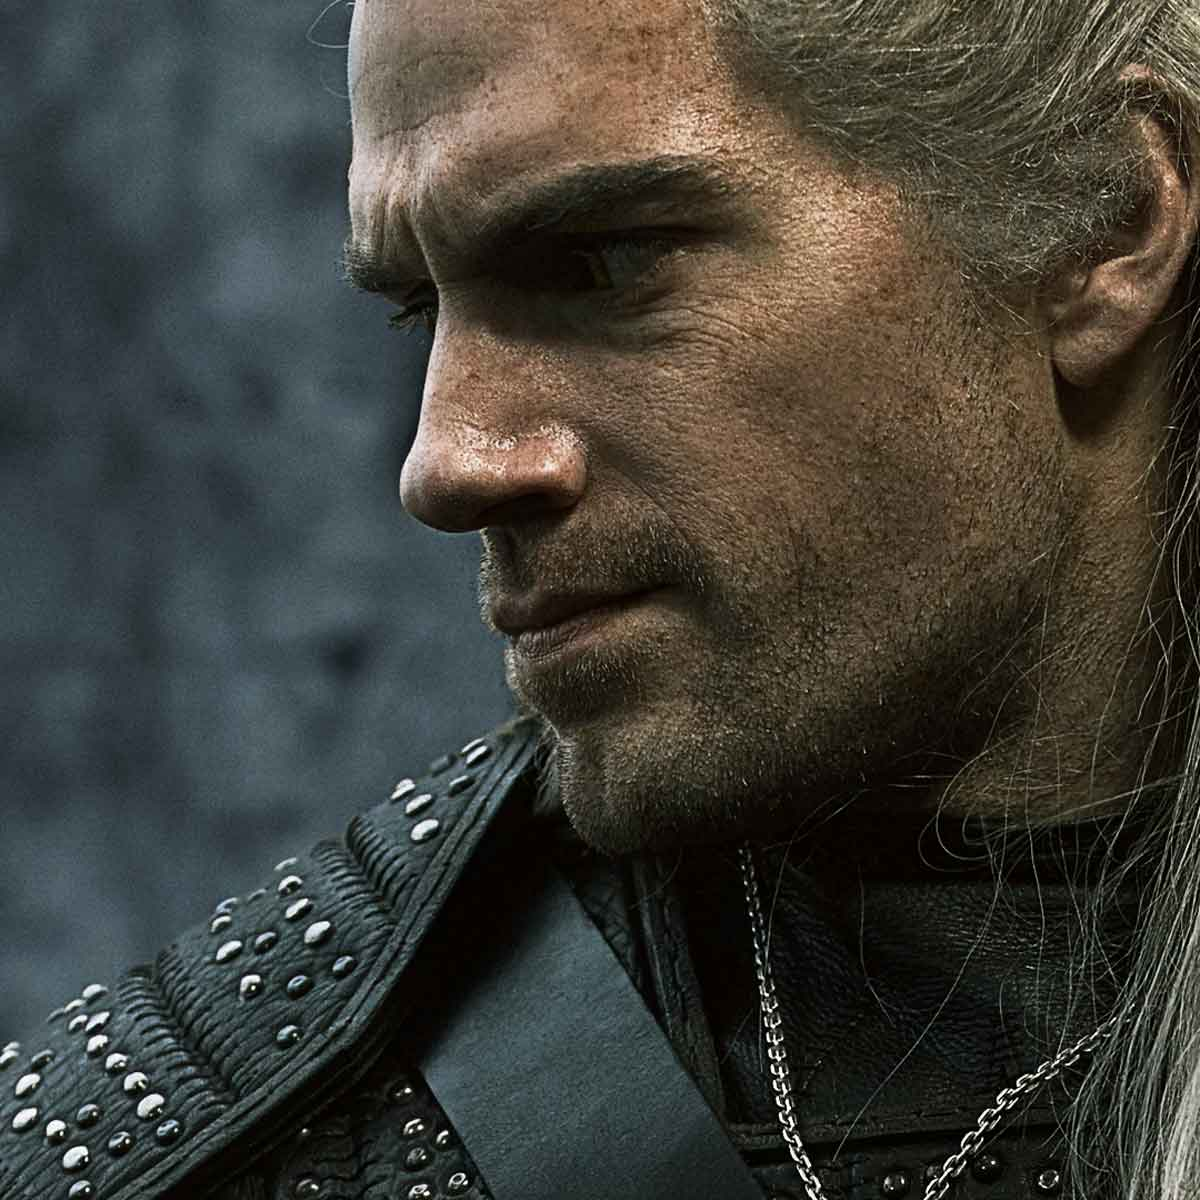 Oficial: The Witcher tendrá segunda temporada en Netflix